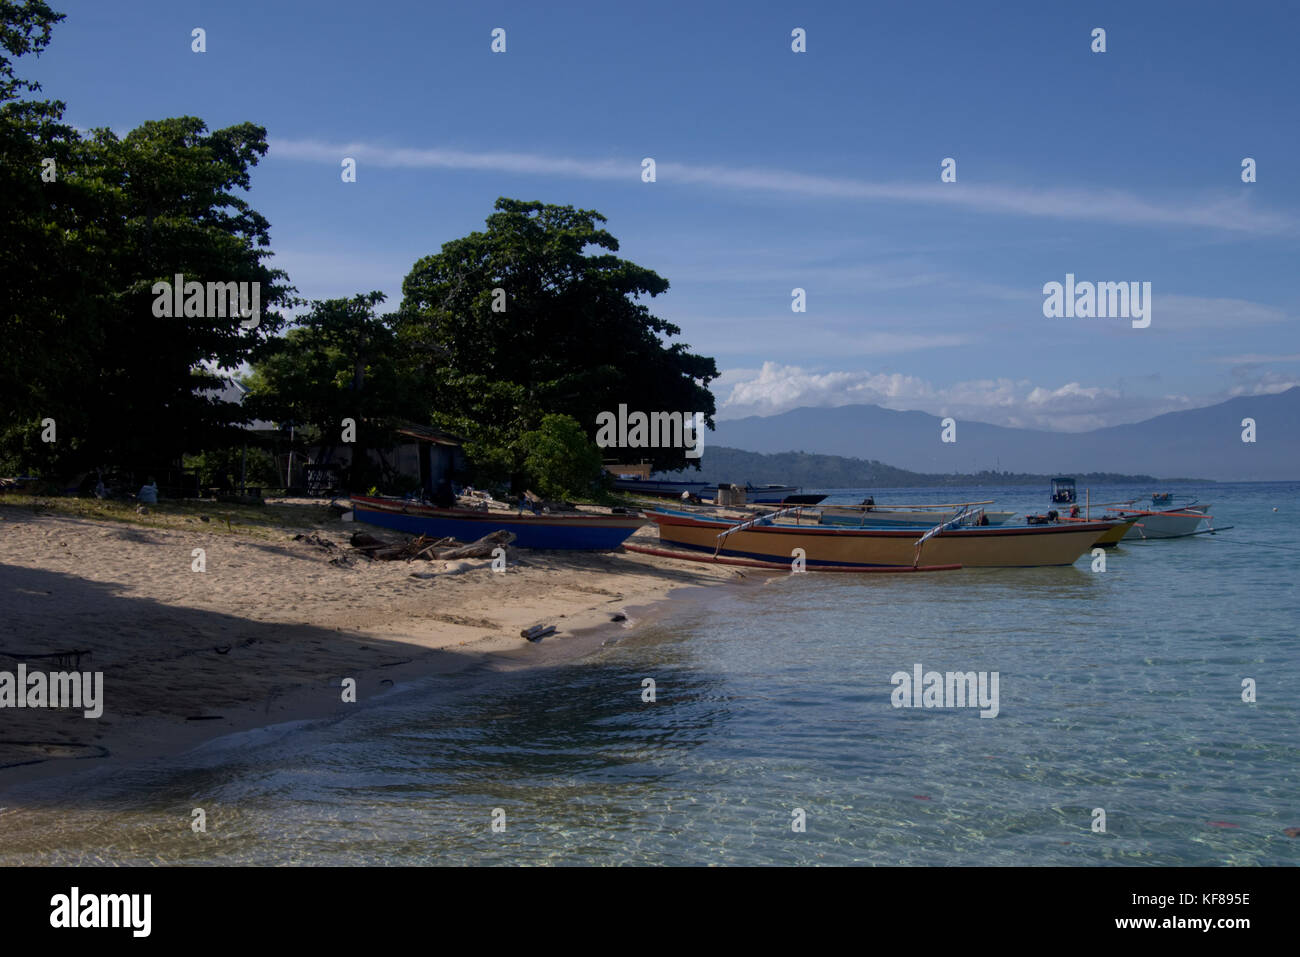 Boats on the beach of Siladen Resort, an island in North Sulawesi, Indonesia - Stock Image